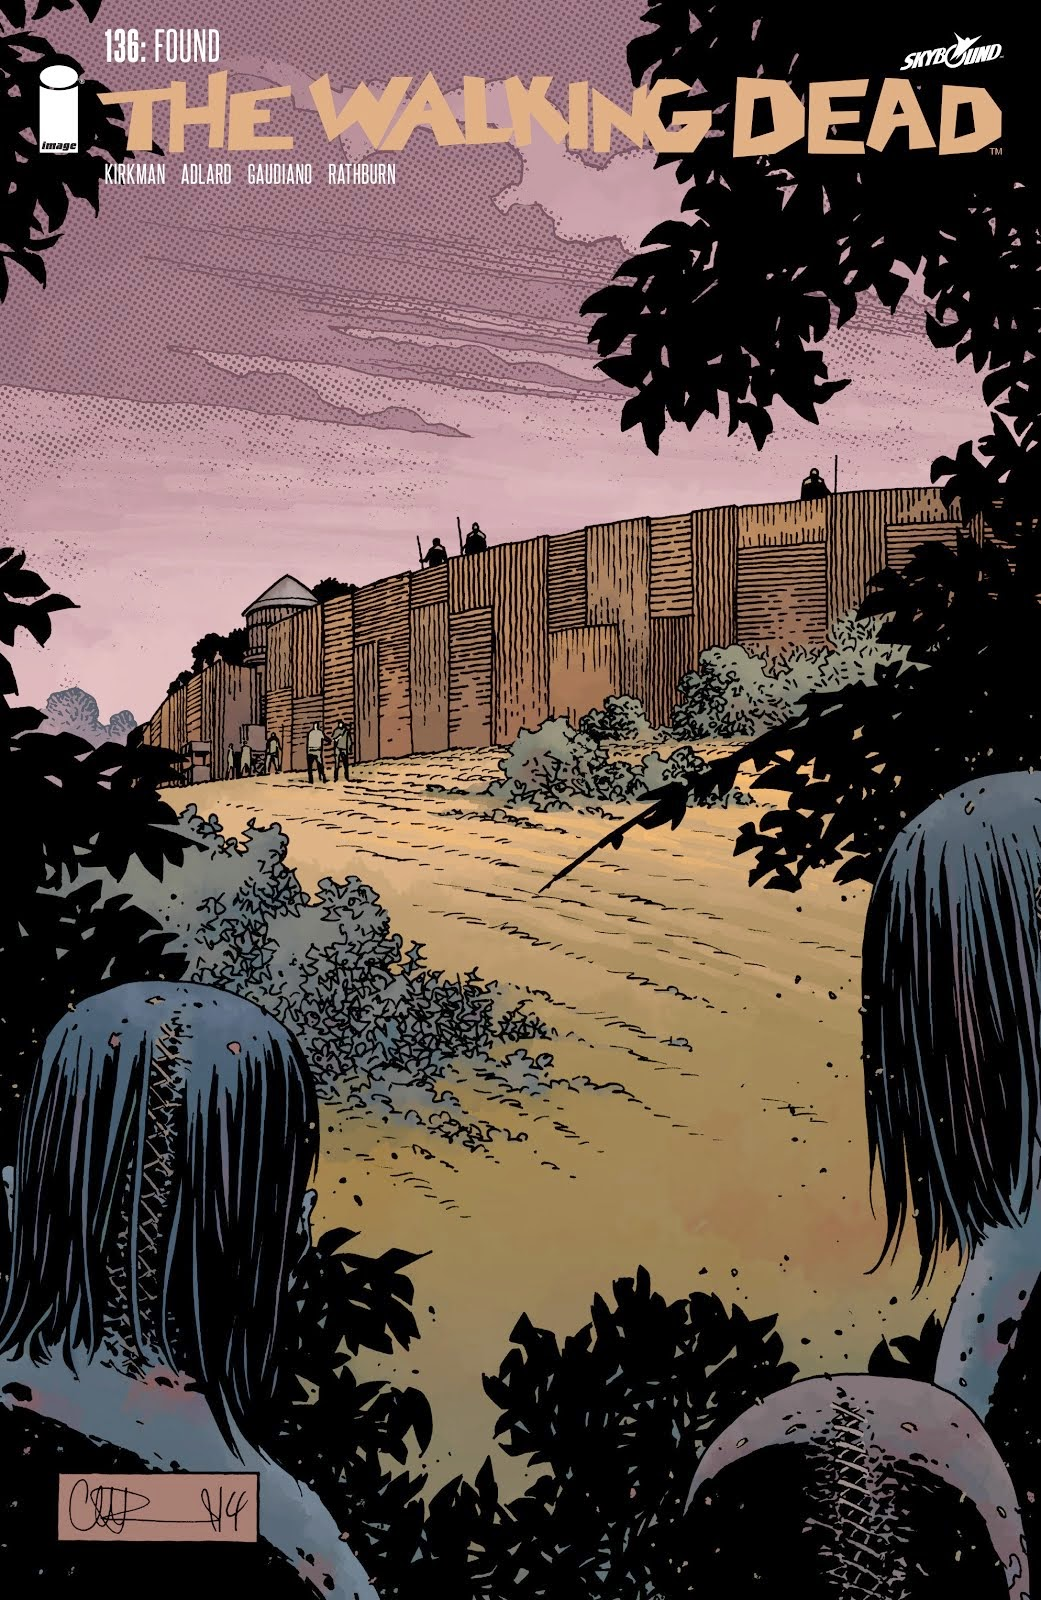 The Walking Dead Comics #136